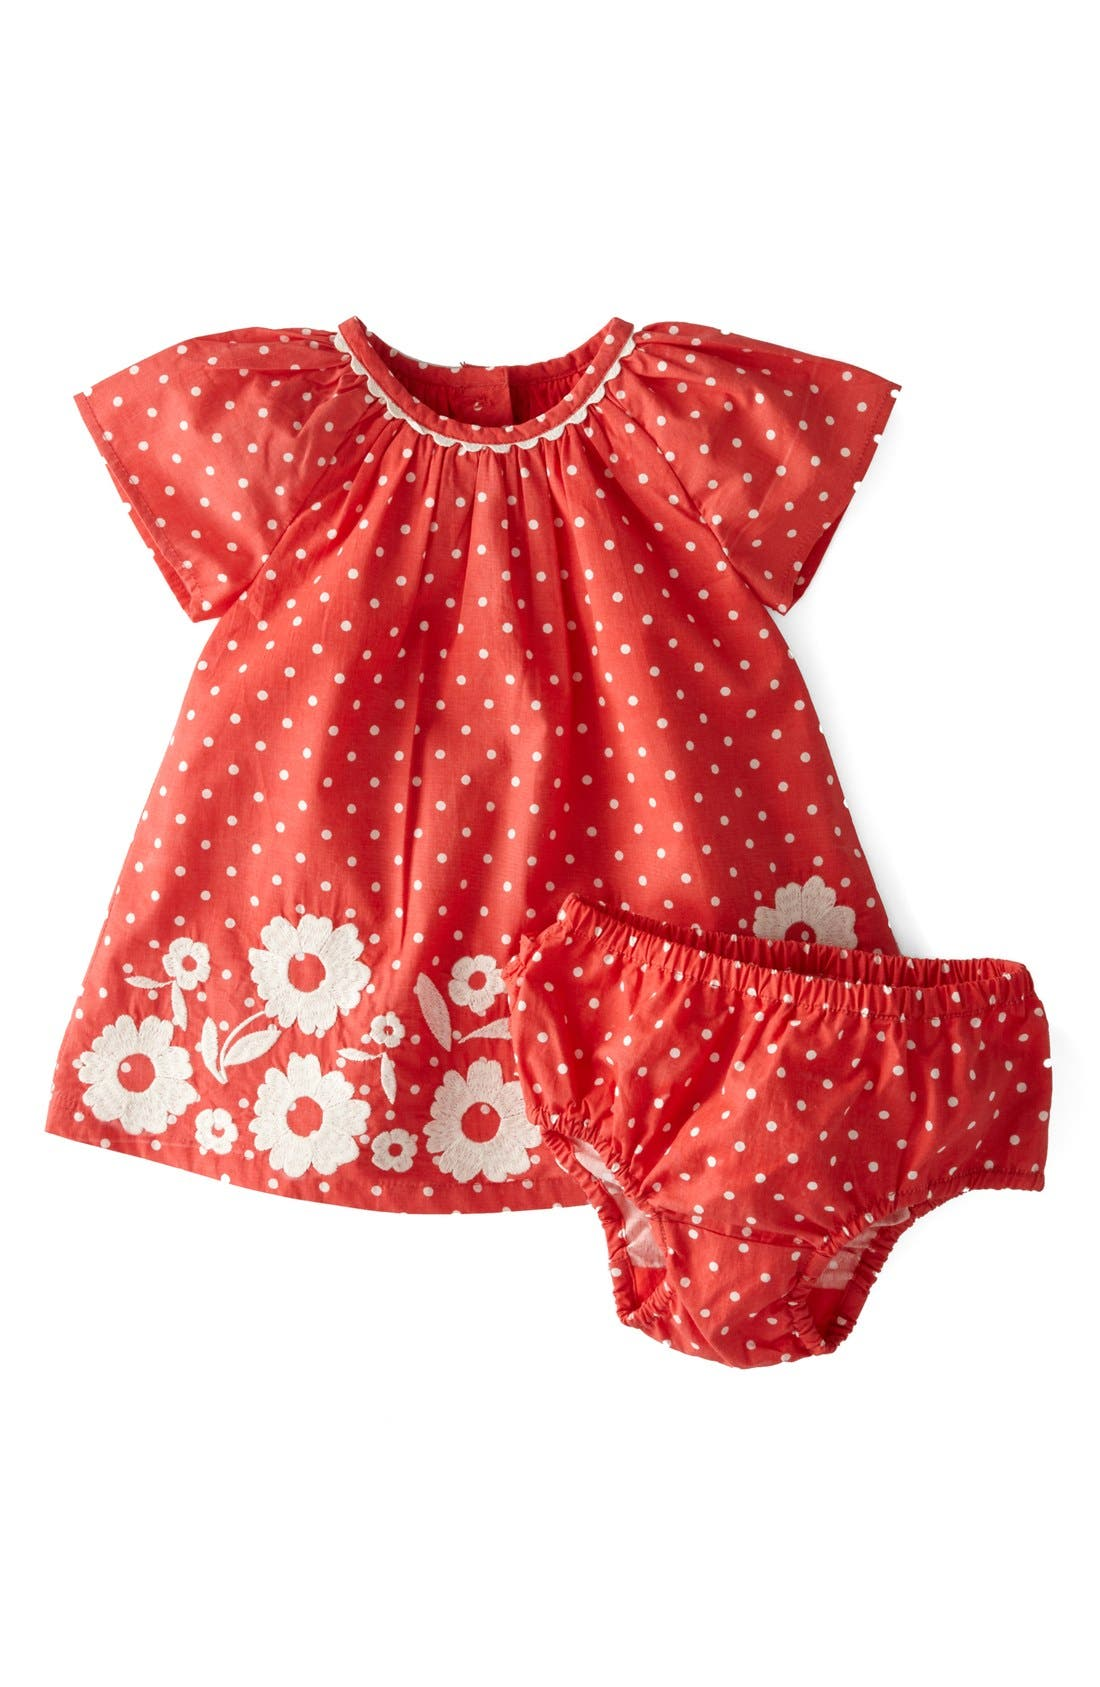 Alternate Image 1 Selected - Mini Boden Embroidered Summer Cotton Poplin A-Line Dress (Baby Girls)